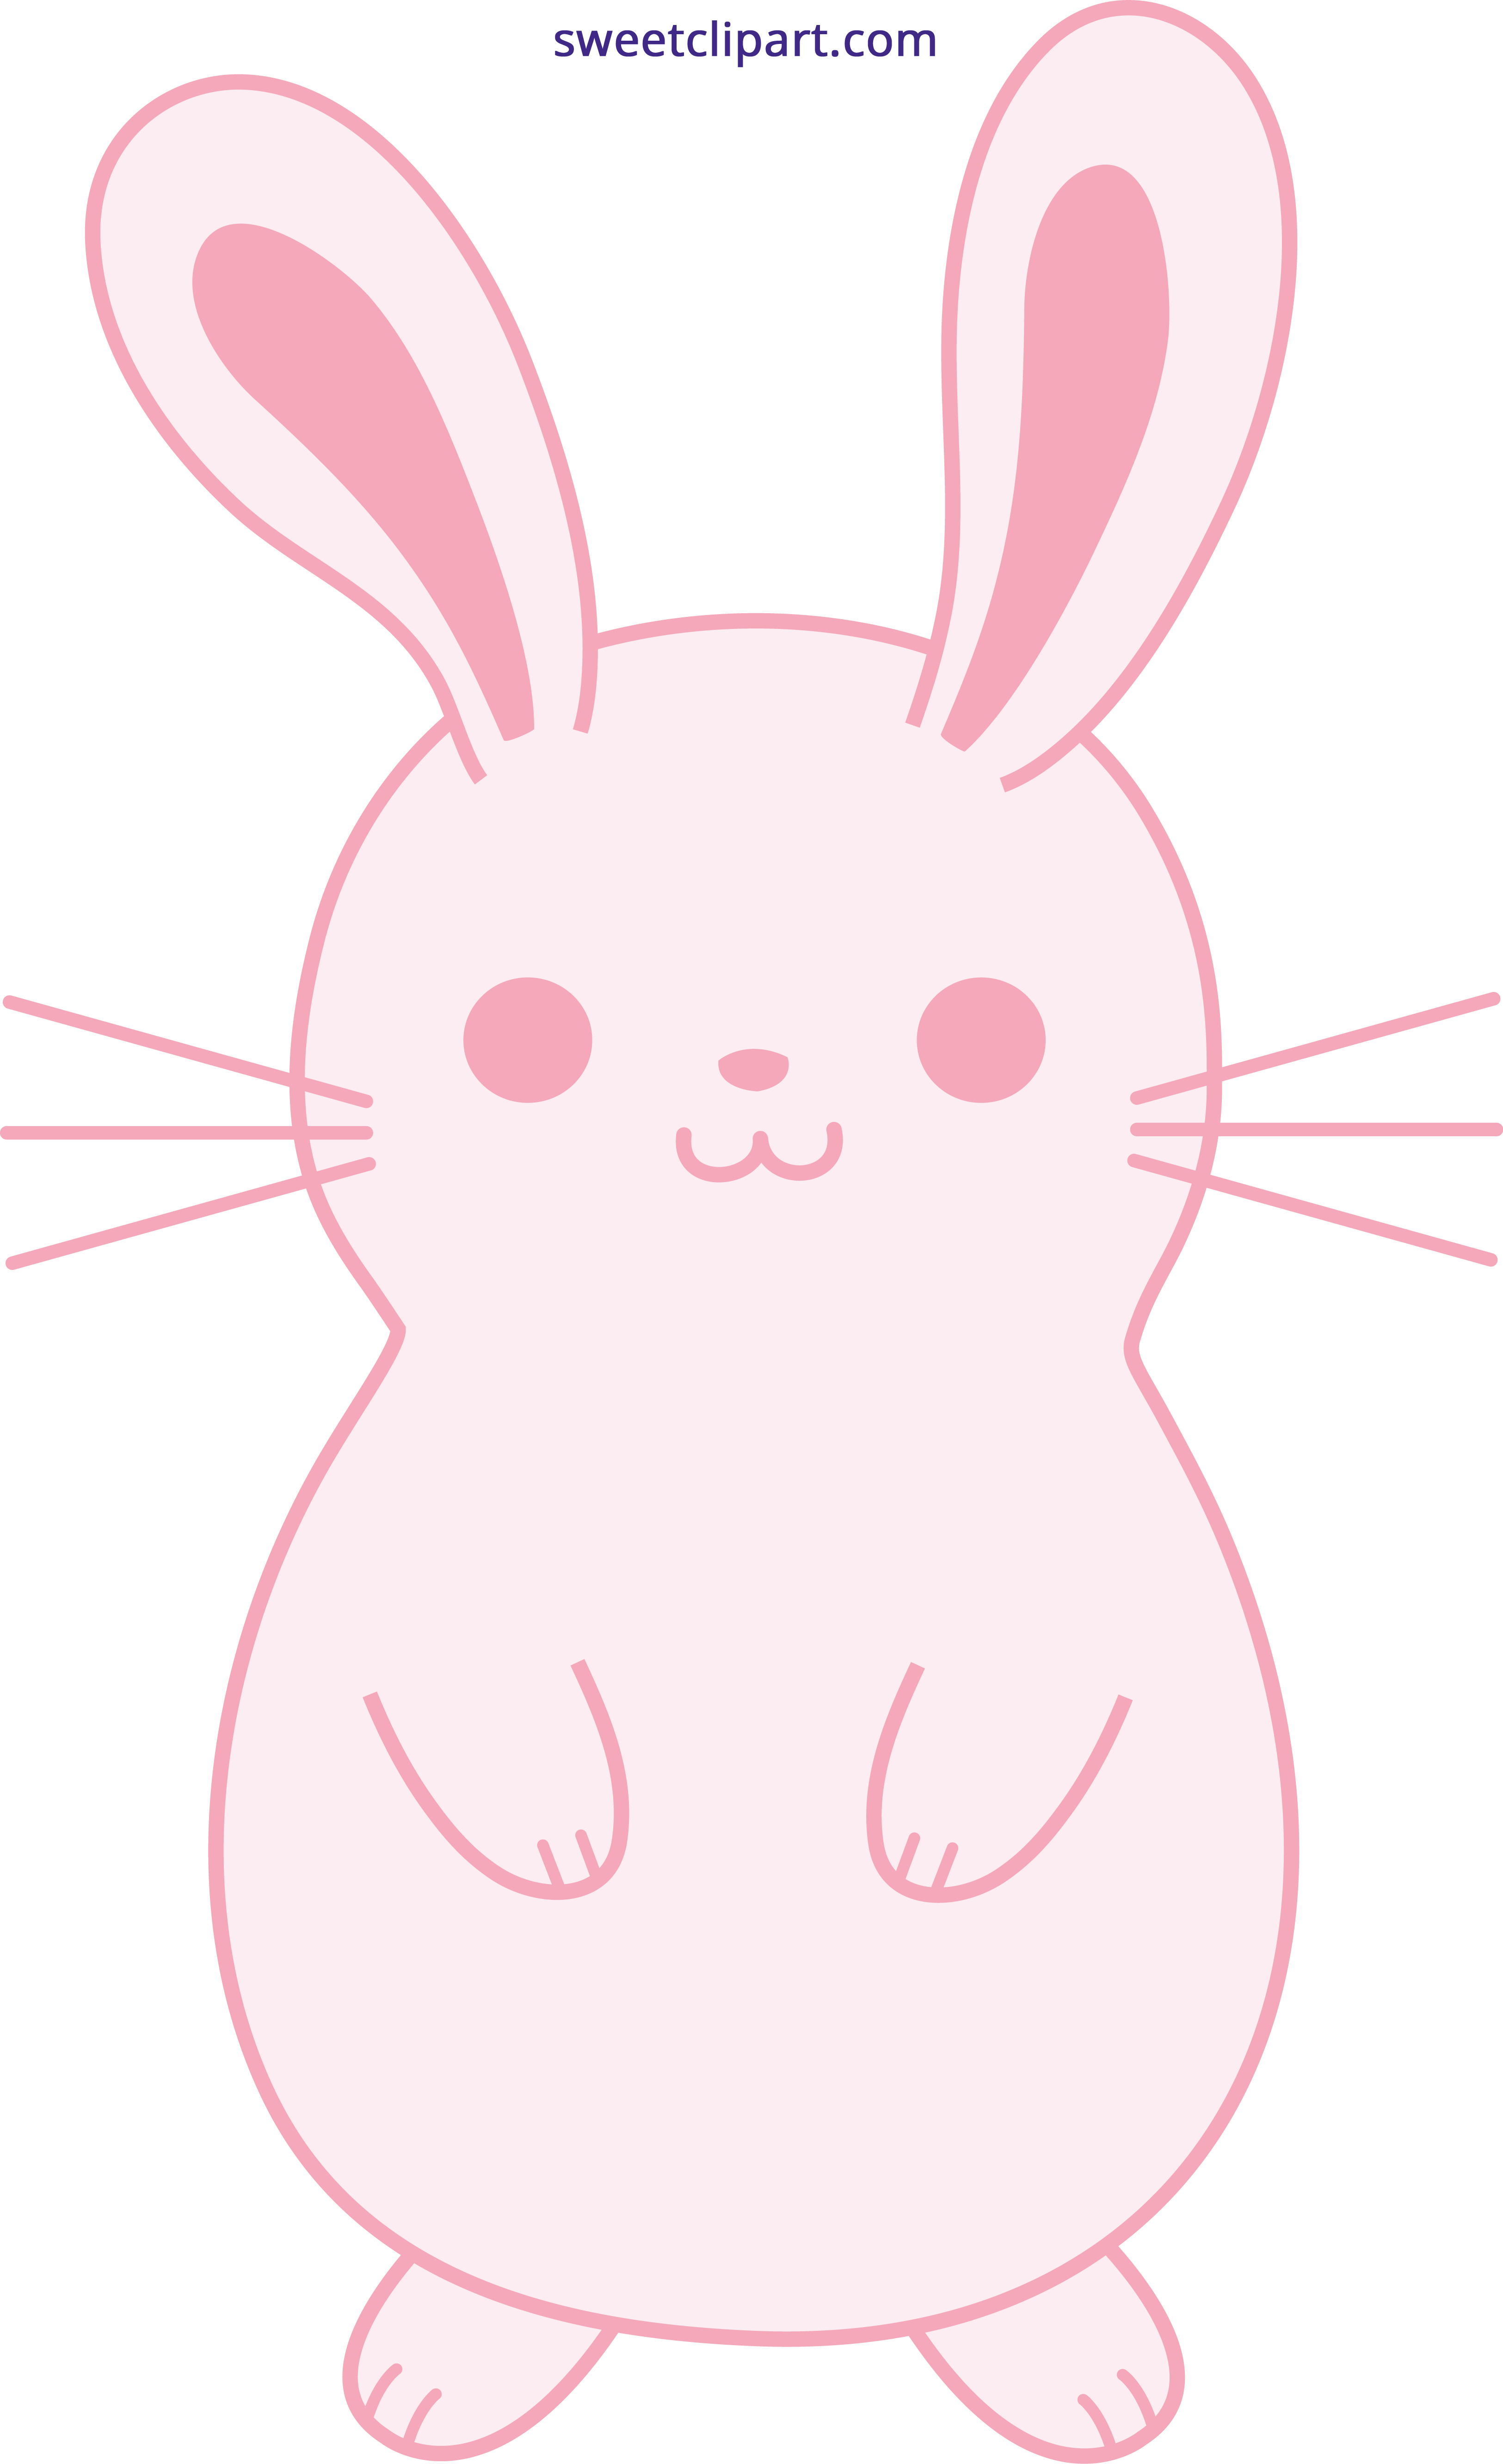 clipart library library Cute pink easter bunny. Bunnies clipart pastel